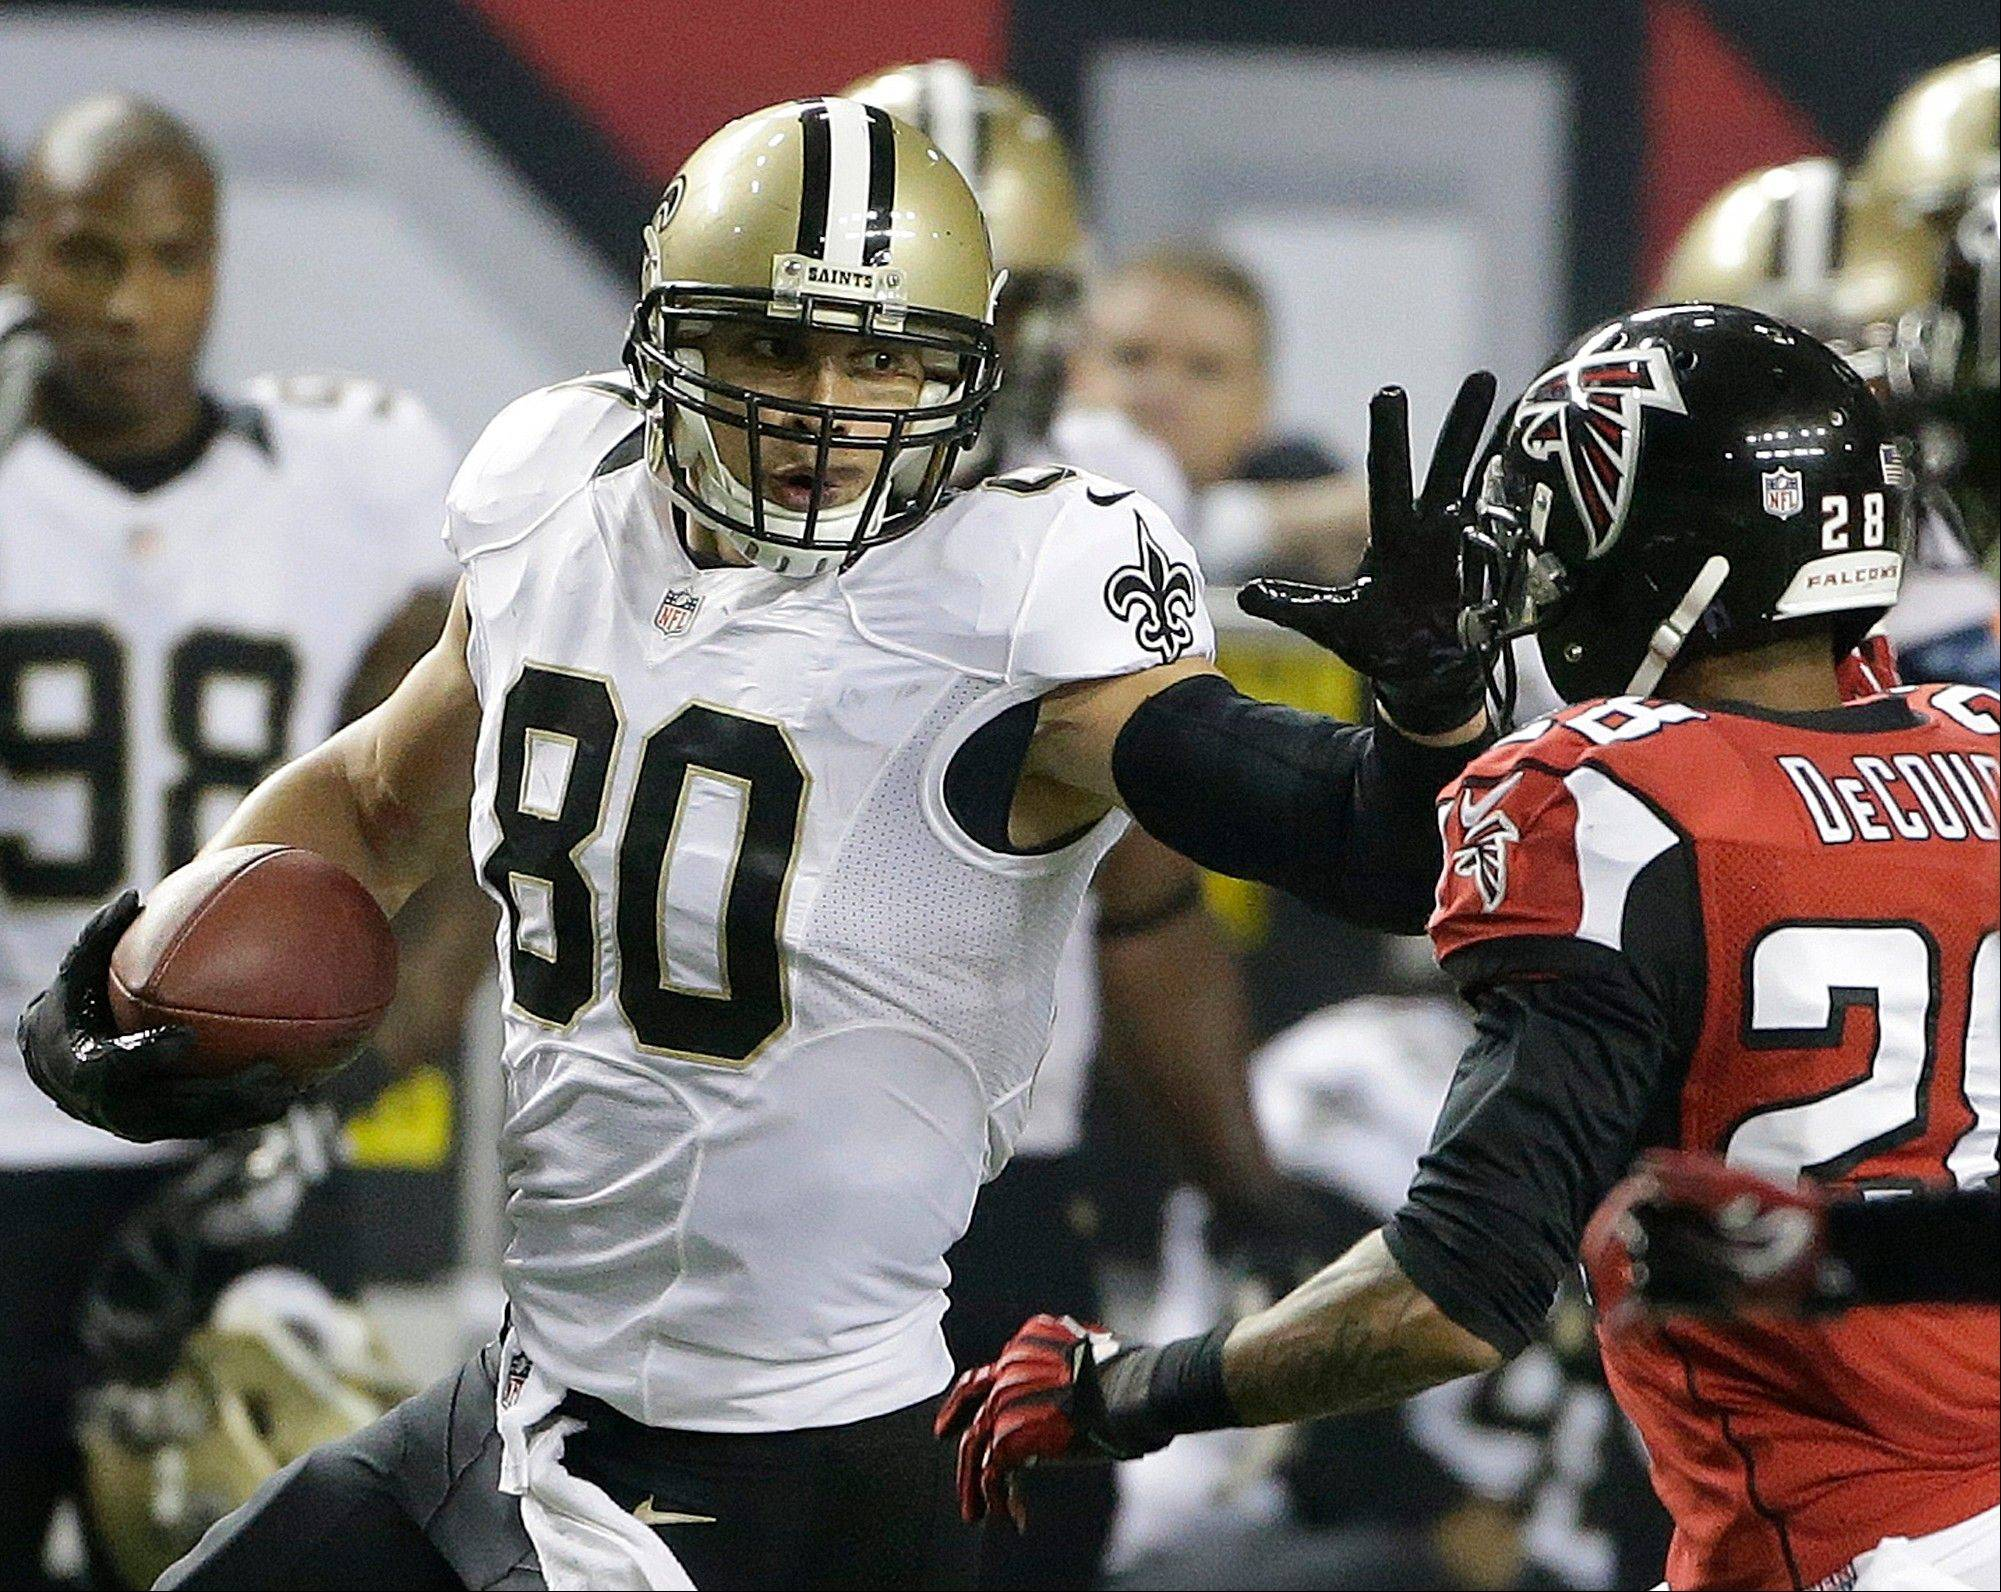 New Orleans Saints tight end Jimmy Graham (80) prepares to stop Atlanta Falcons free safety Thomas DeCoud (28) during the second half of an NFL football game, Thursday, Nov. 21, 2013, in Atlanta. (AP Photo/John Bazemore)